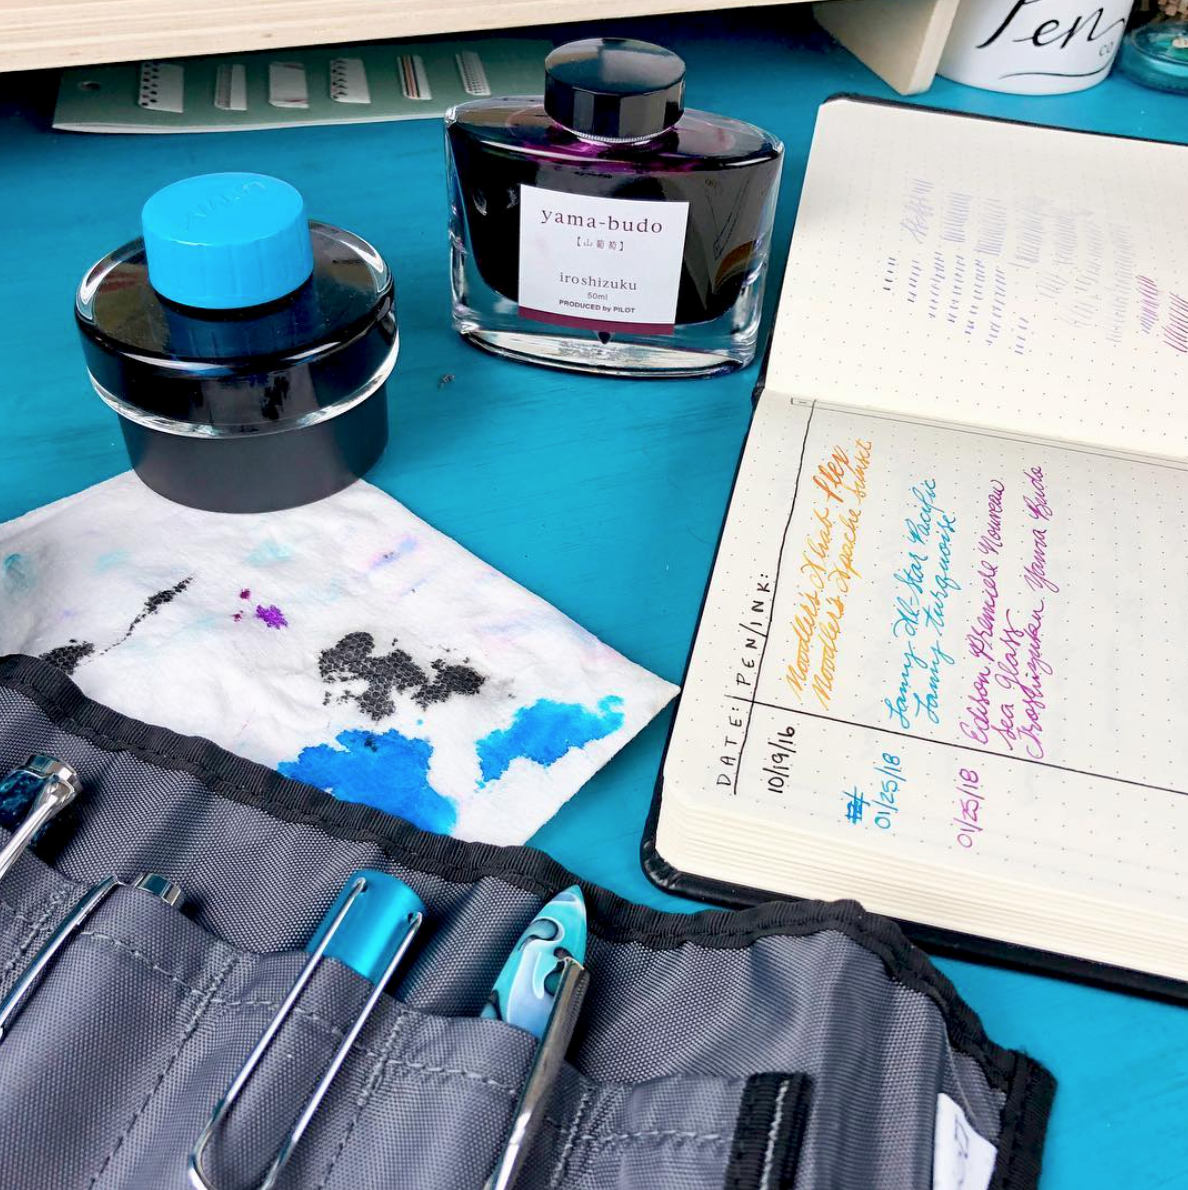 Fountain Pens - I've always been a self-proclaimed stationary junkie (and currently taking the next step in pondering starting a studyblr - wild, I know!), but I have recently delved into the world of fountain pens and customizing my own ink selections and loving every minute. My two current prized possessions are my Lamy Safari (fine) and Pilot Kakuno (medium) filled with various ink samples from Goulet Pens!